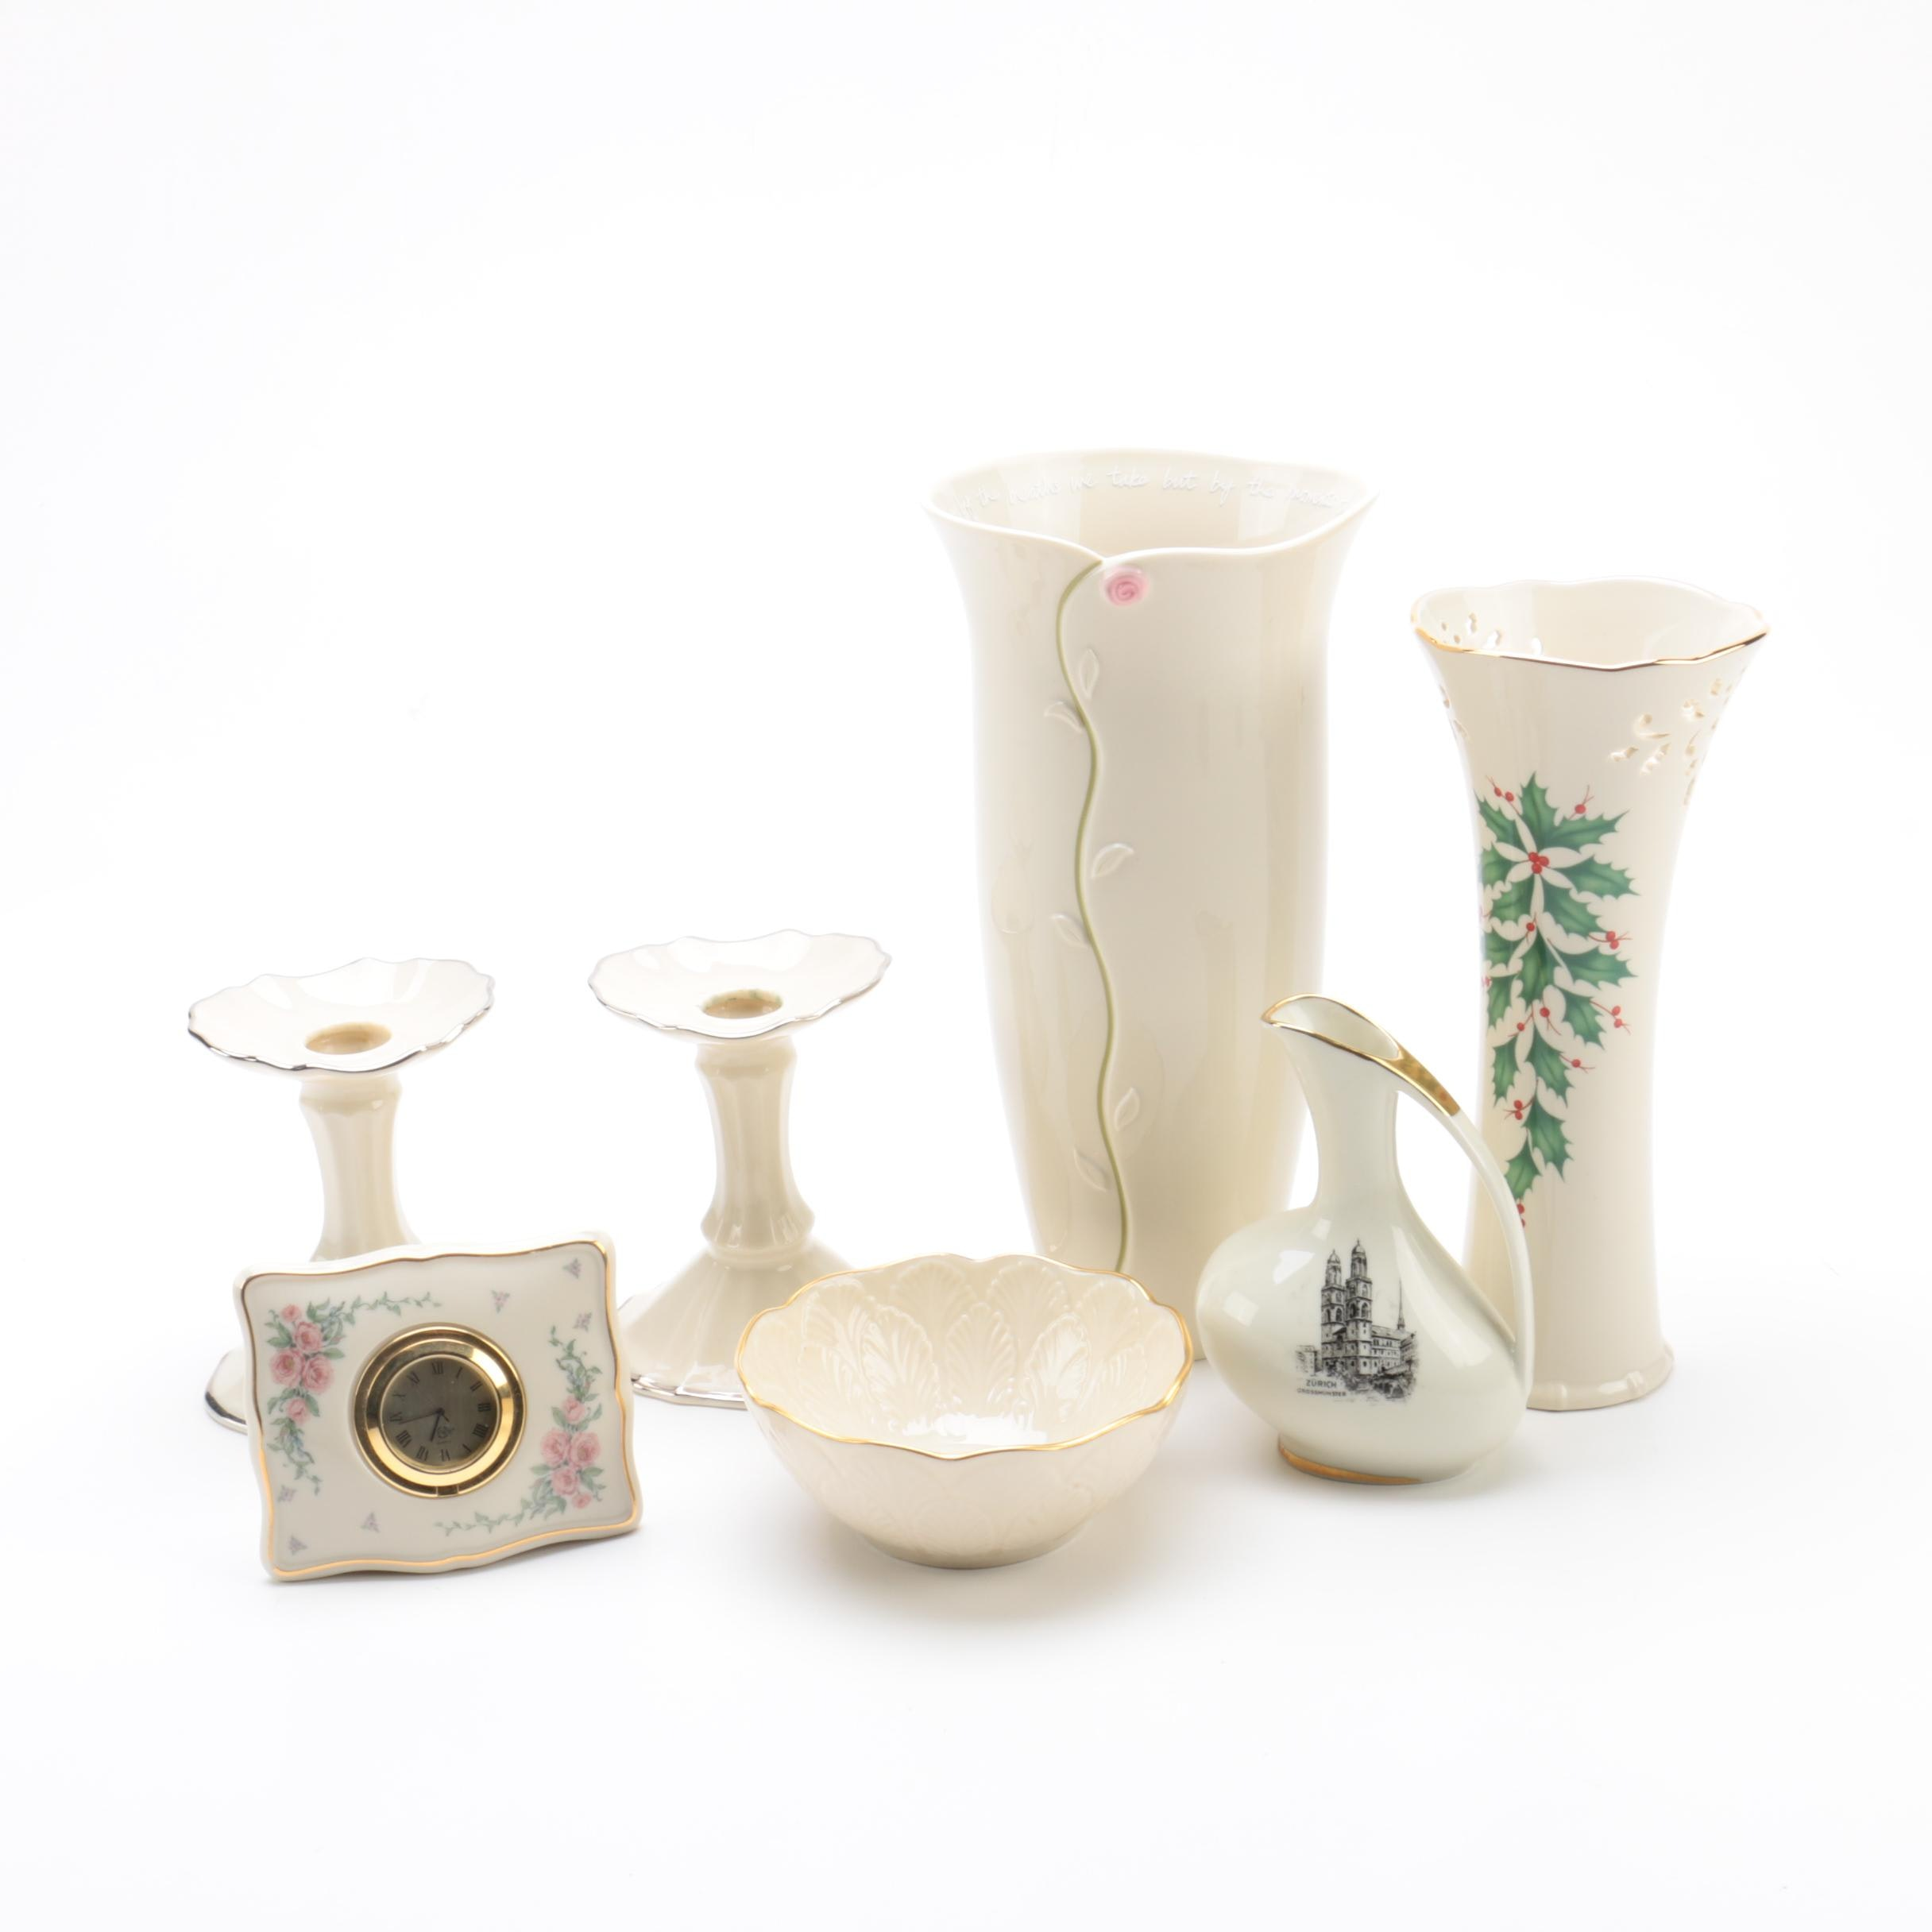 Lenox Porcelain Vases, Candle Holders and Clock